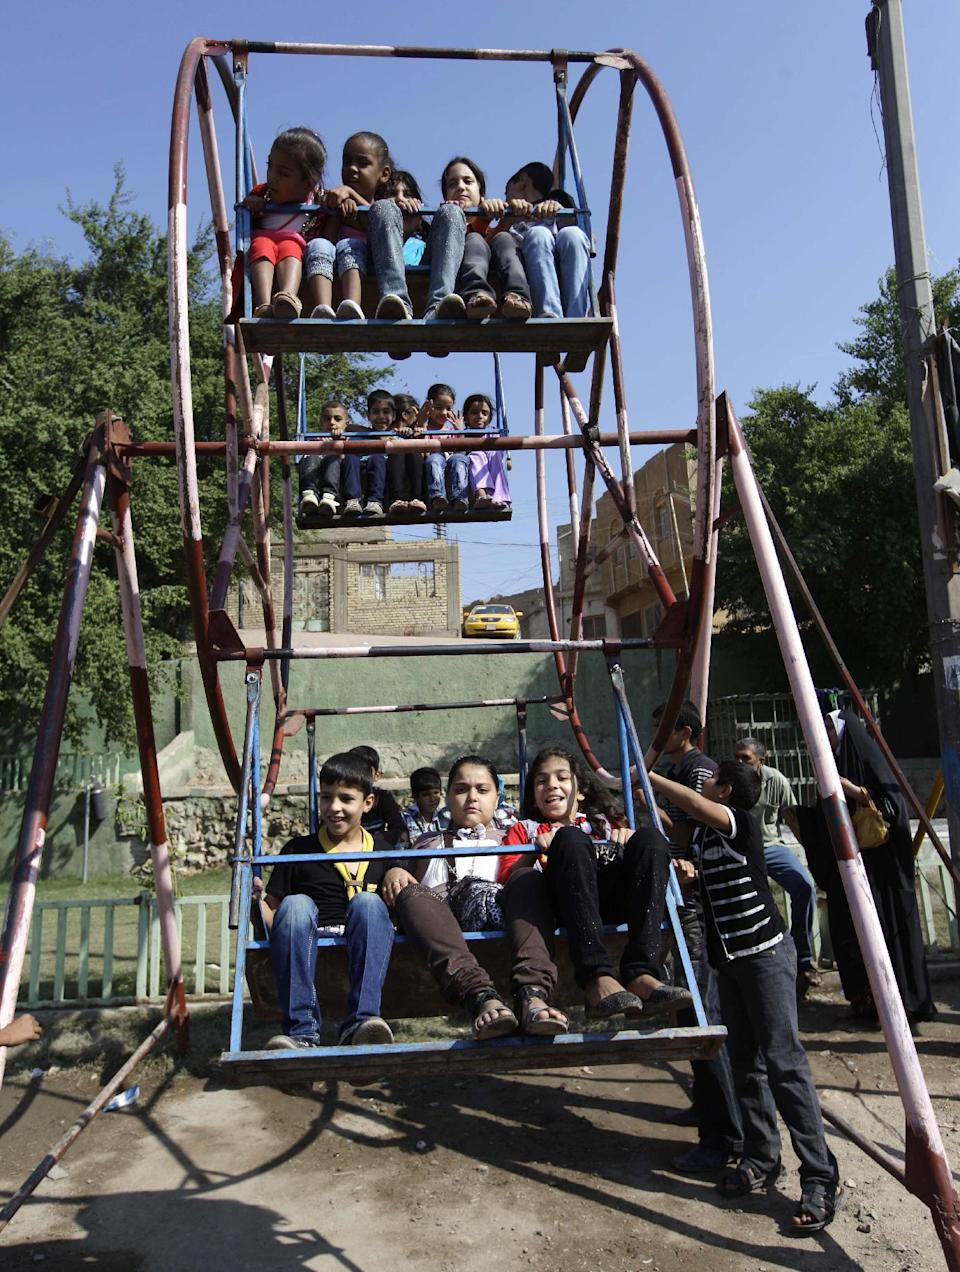 Iraqi children play during Eid al-Adha celebrations in Baghdad's Fadhil neighborhood, Iraq, Saturday, Oct. 27, 2012. A bombing near a playground and other insurgent attacks killed 18 people including several children in Iraq on Saturday, police said. (AP Photo/Khalid Mohammed)